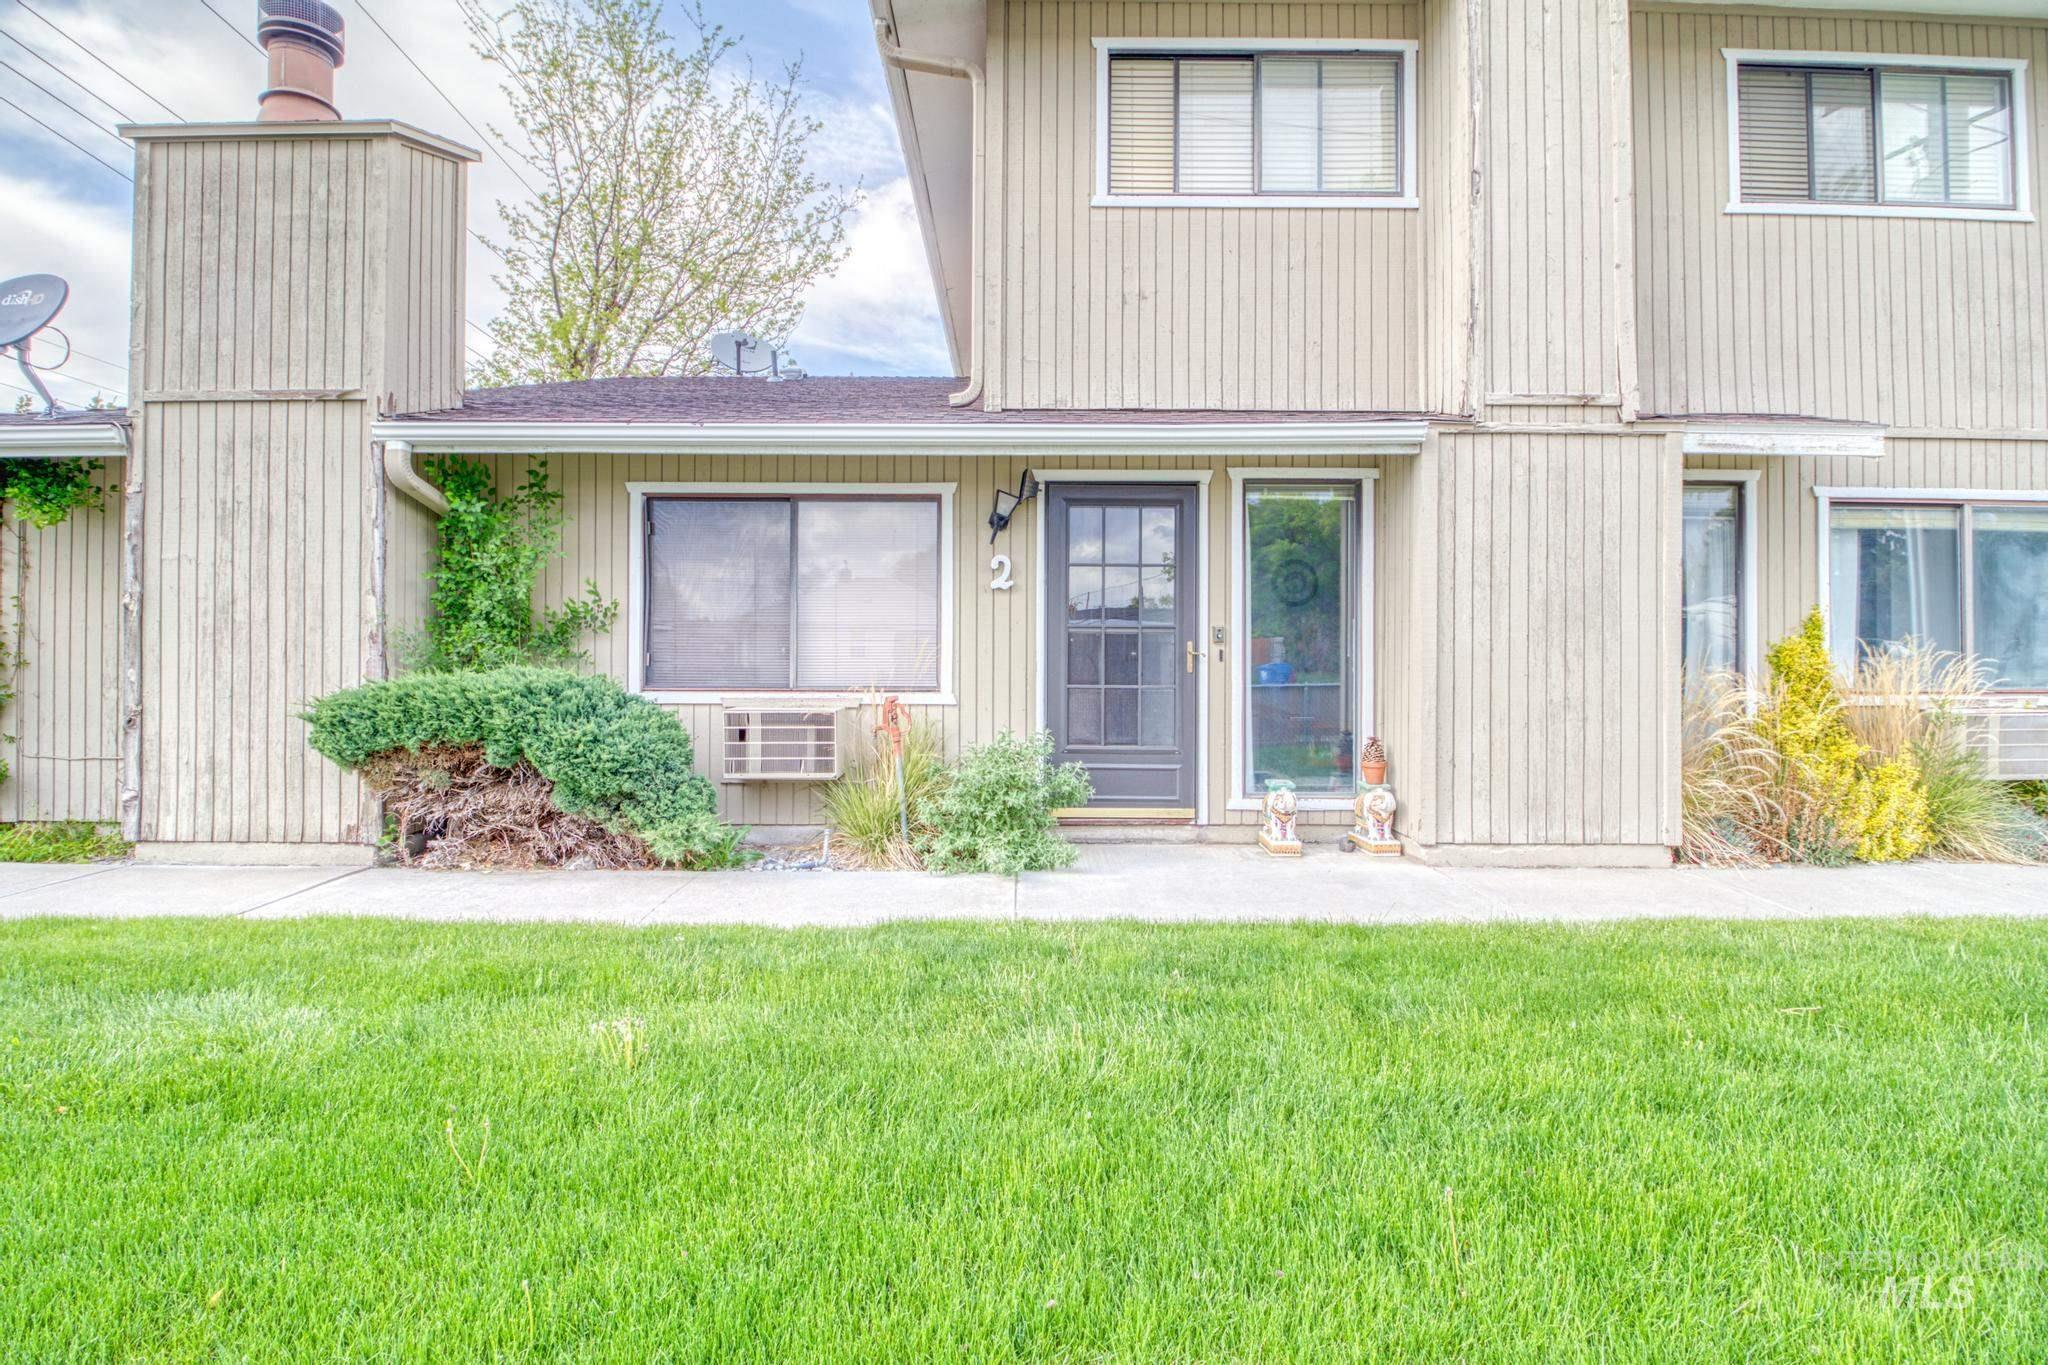 710 Washington St. N. # 2 Property Photo - Twin Falls, ID real estate listing